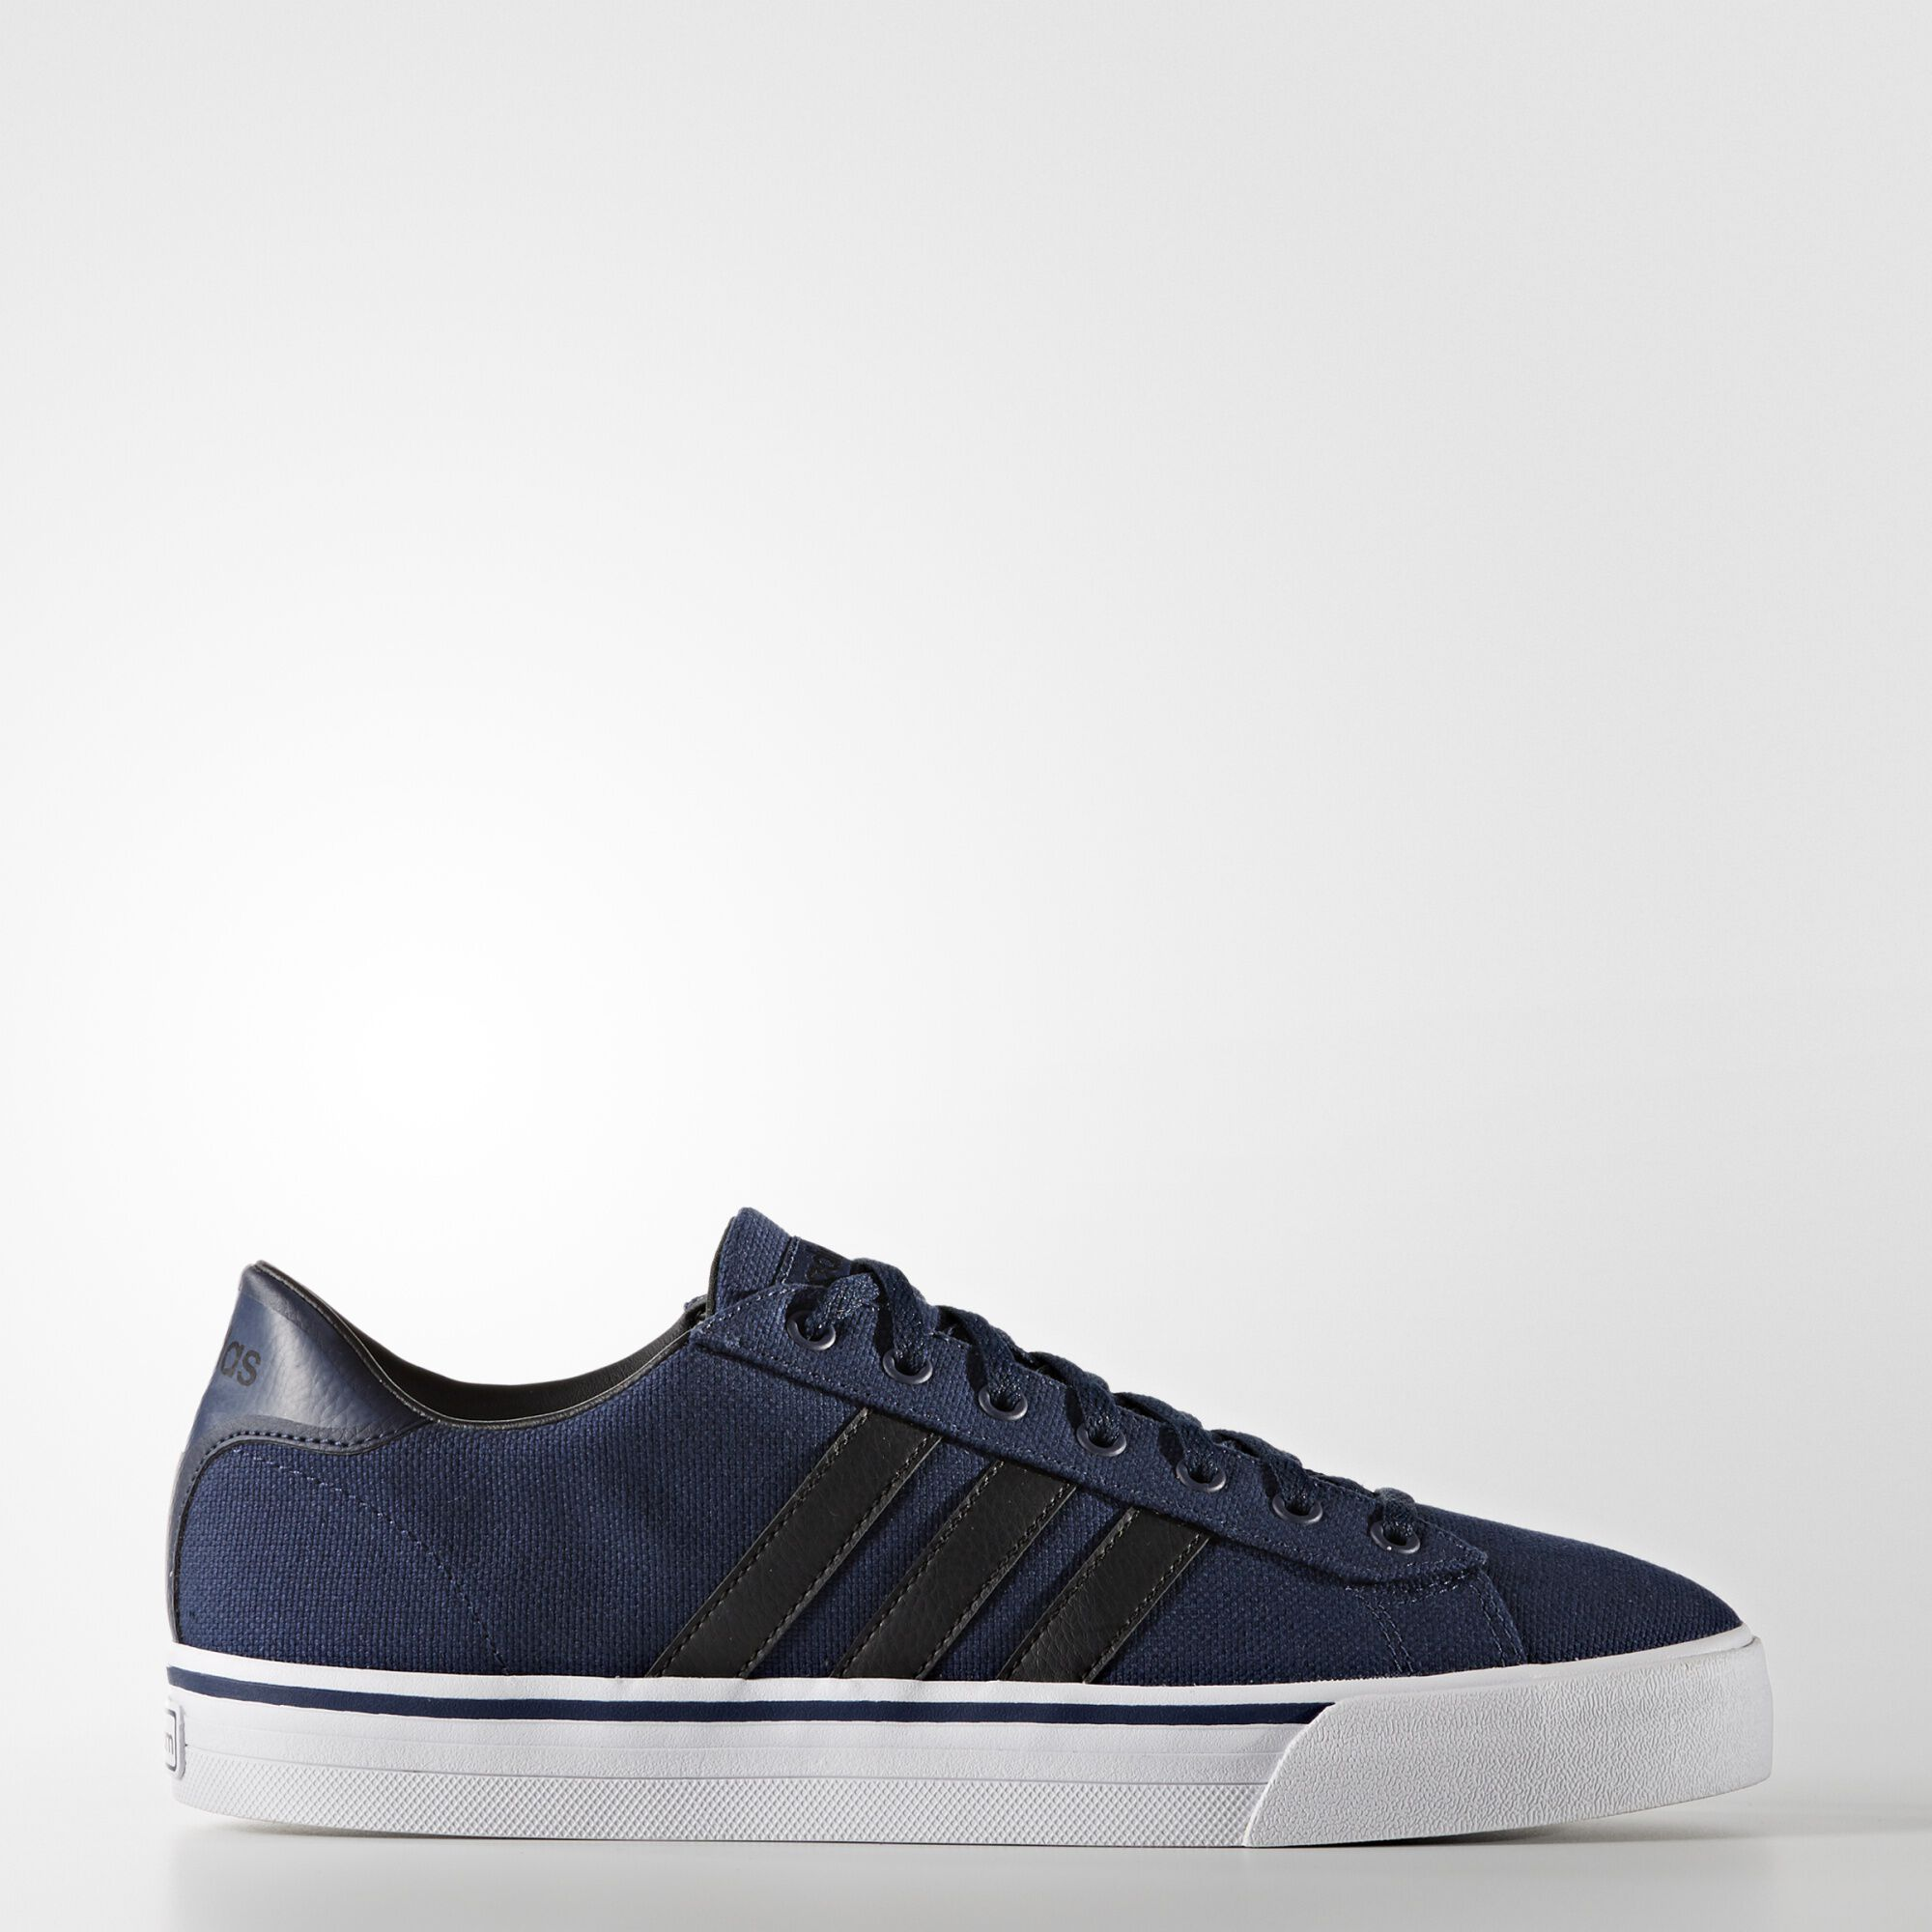 adidas neo shoes for men